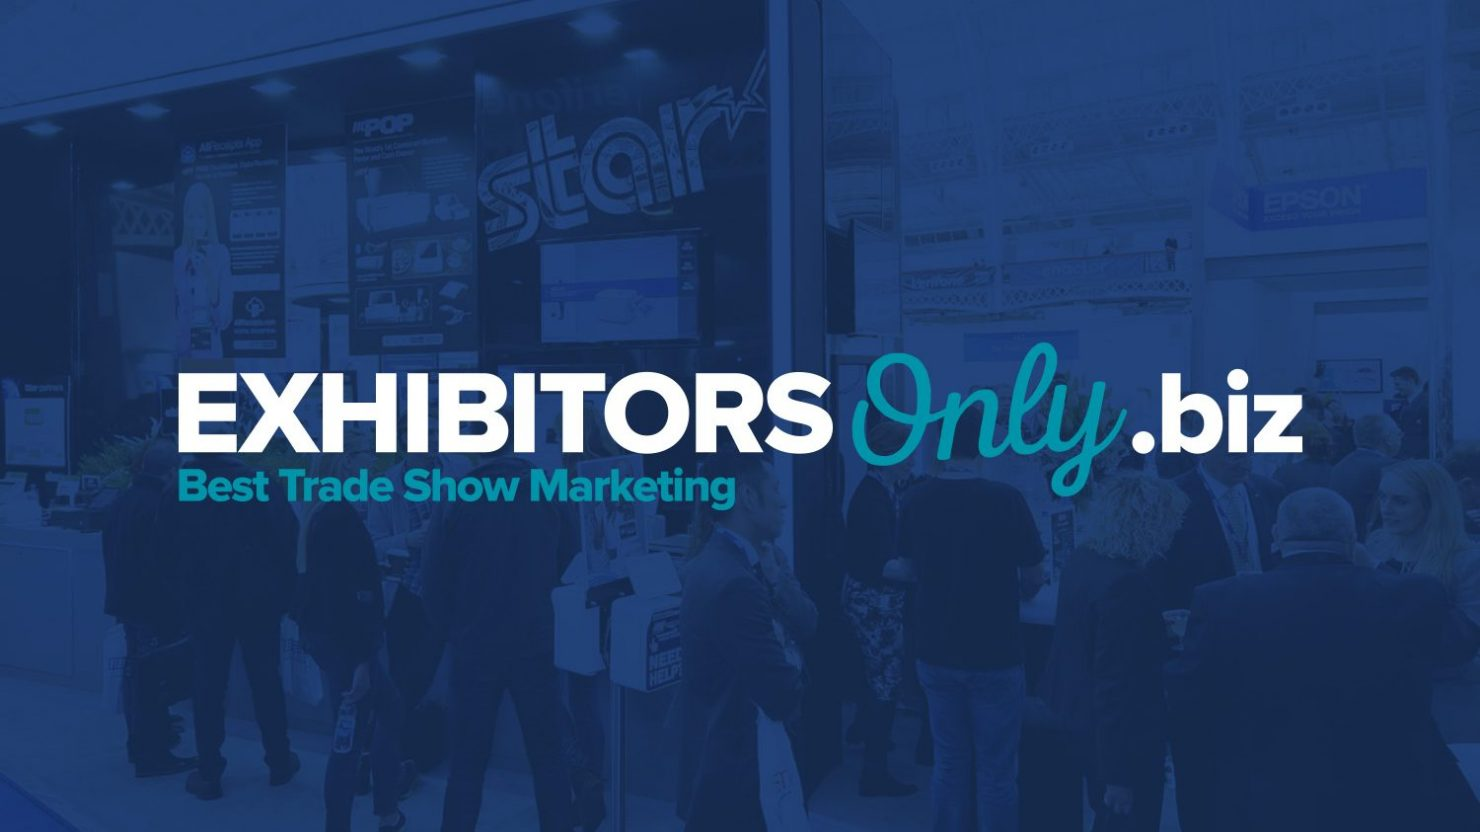 creative logo design for exhibitors only trade show marketing